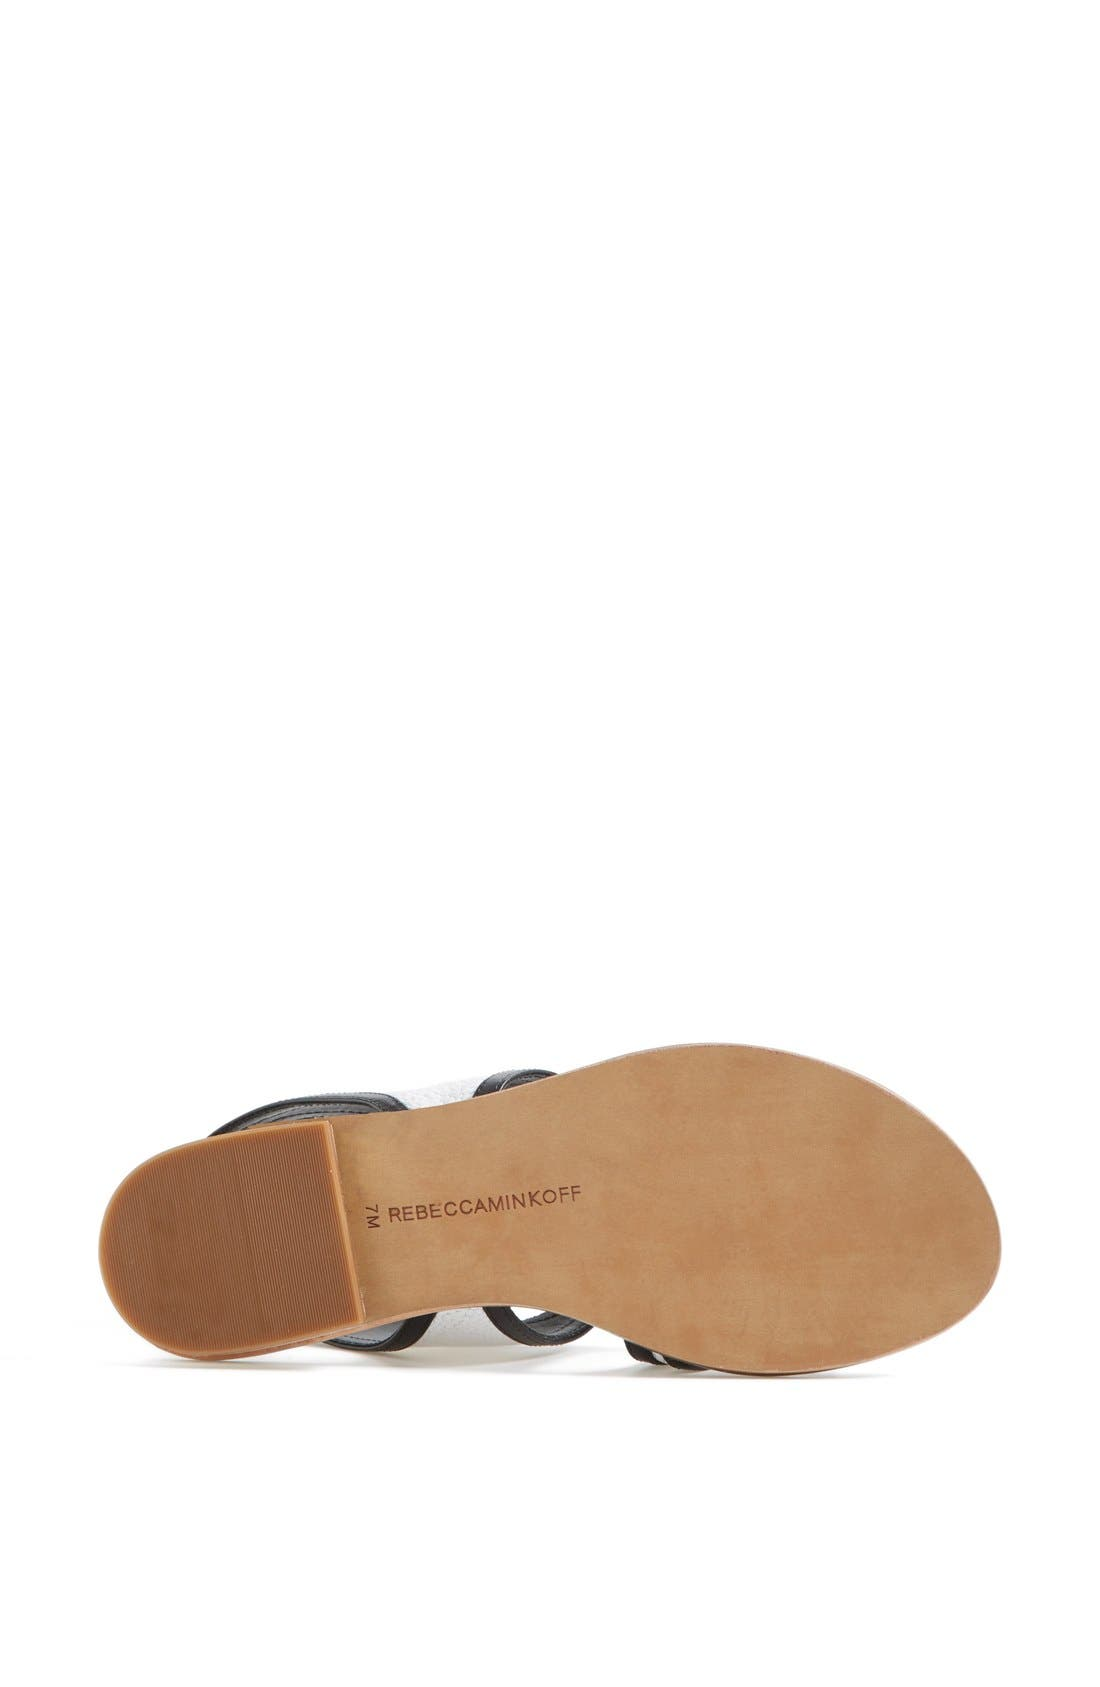 Alternate Image 3  - Rebecca Minkoff 'Simon' Sandal